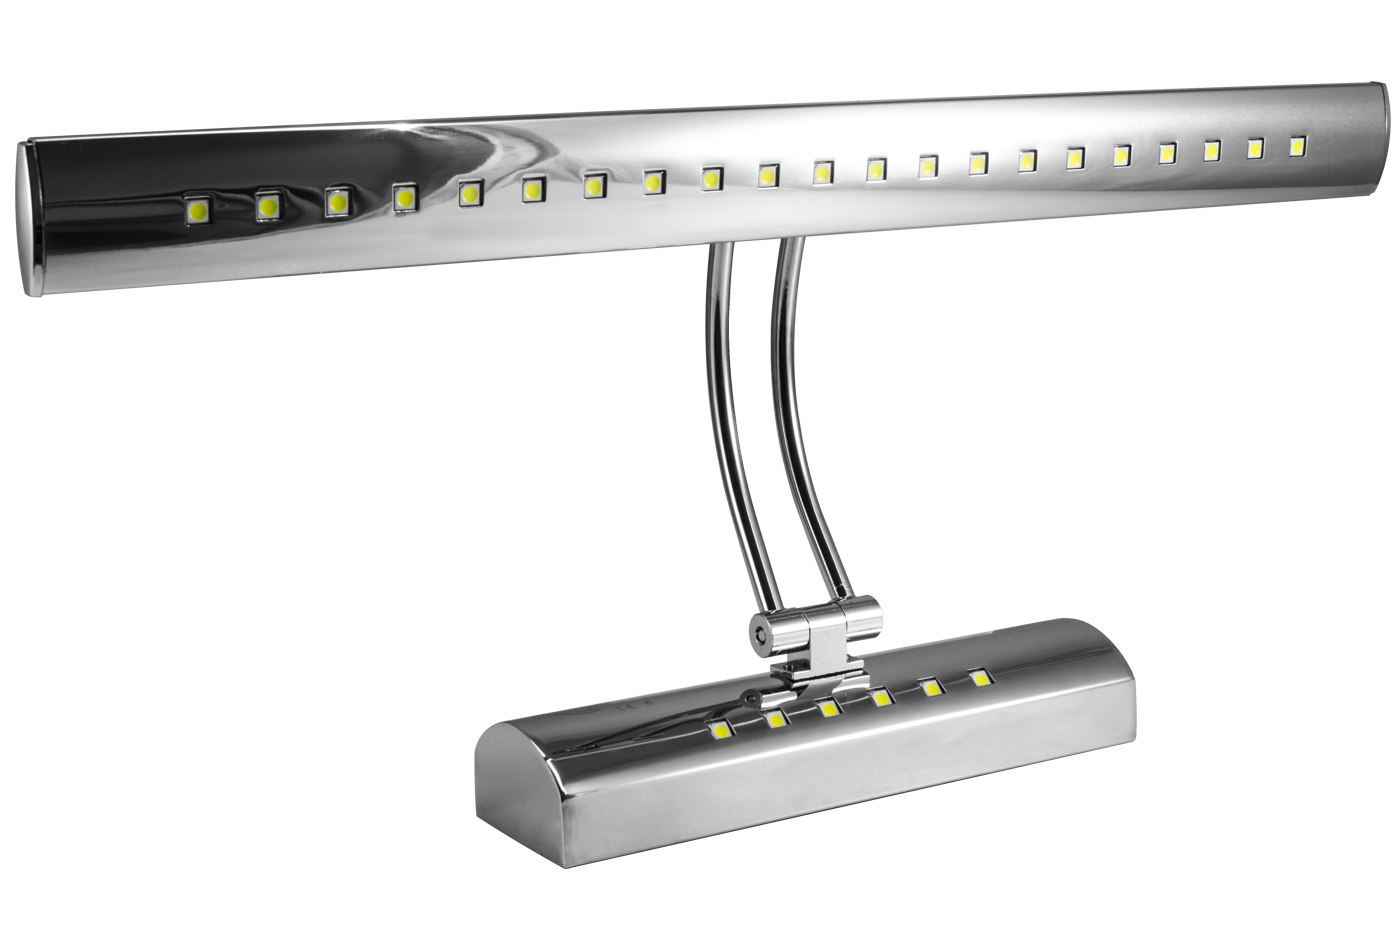 Plafoniere Muro : Bes 22060 applique beselettronica parete 27 led 7 w